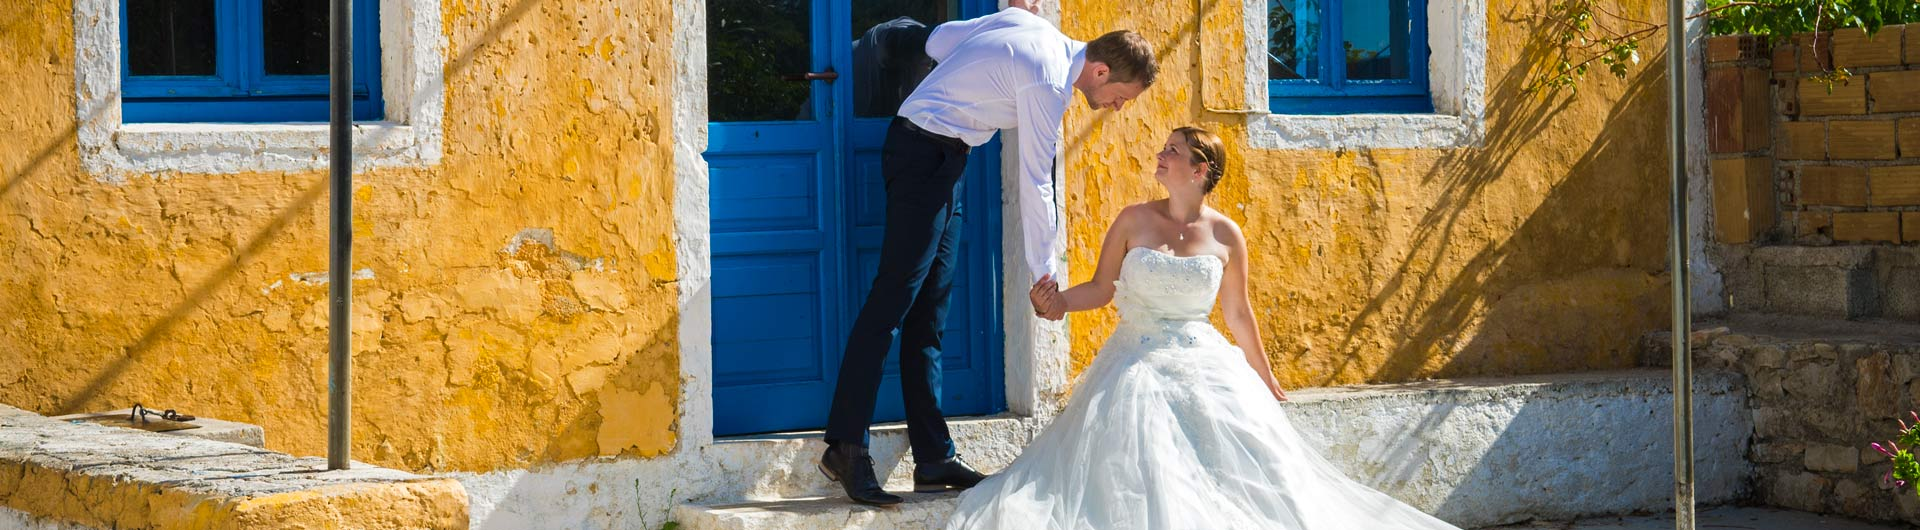 Wedding photo shoot in Zakynthos